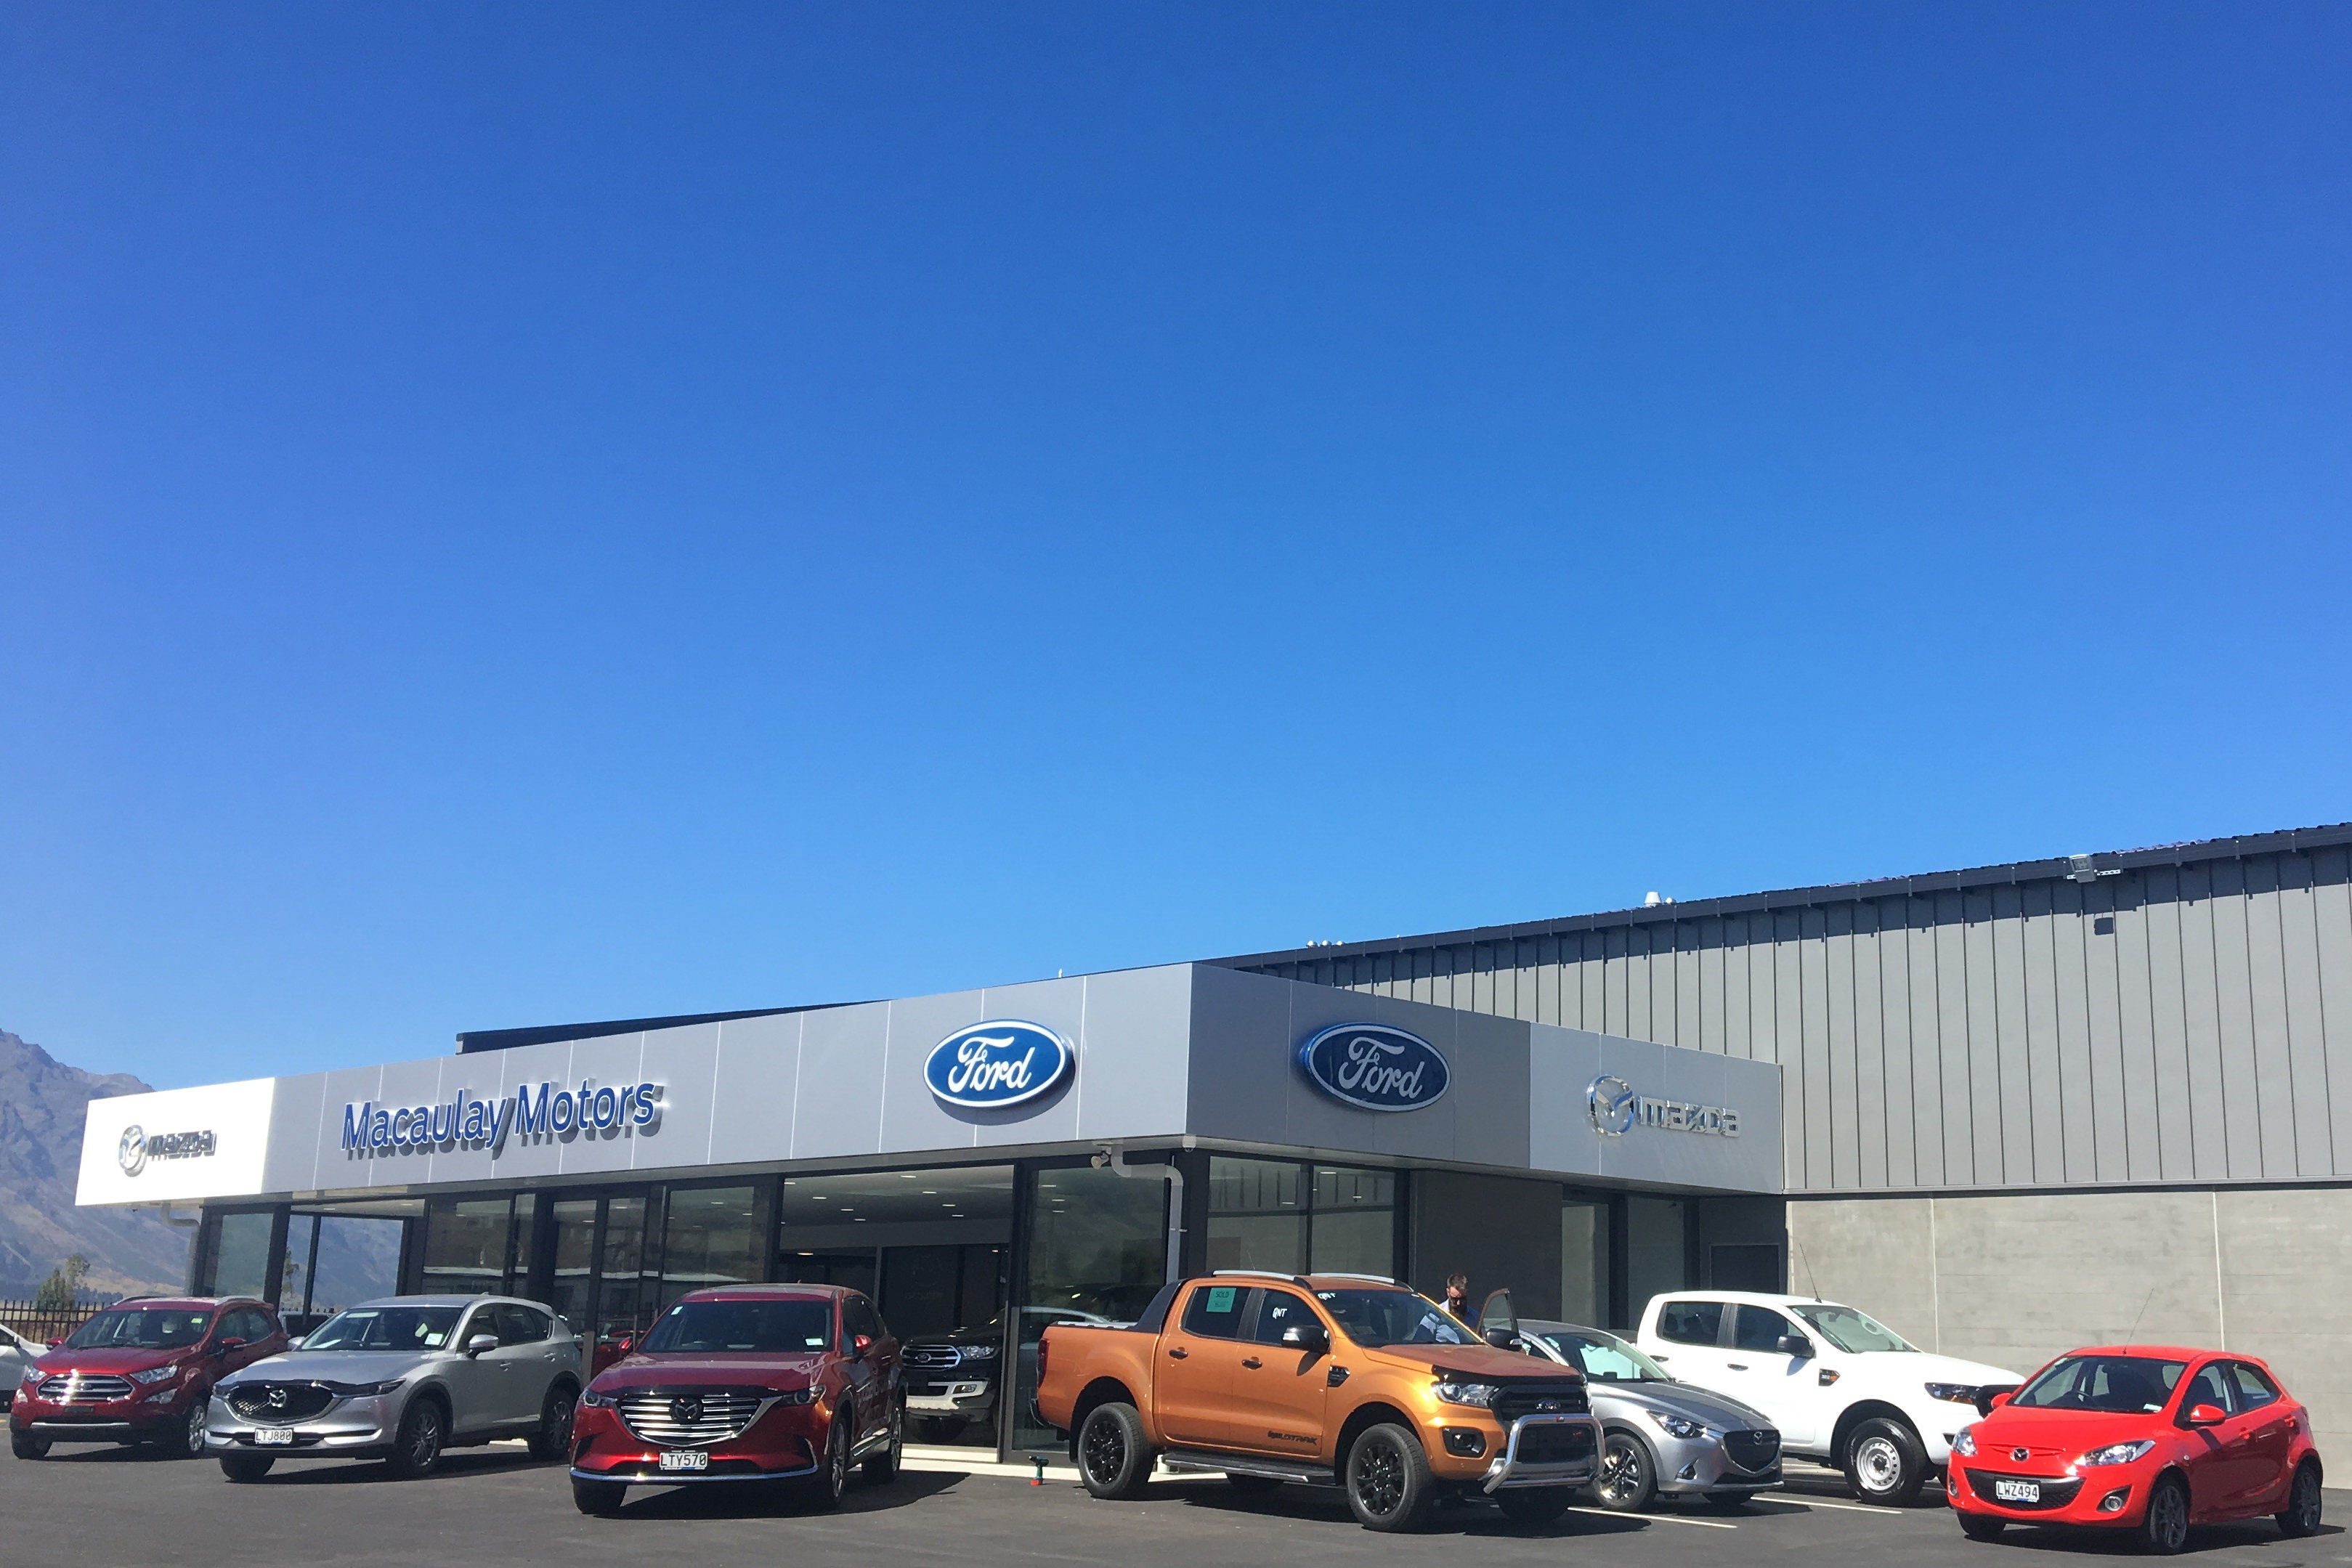 /i/Images/Thumbnails/QueenstownDealership.jpg